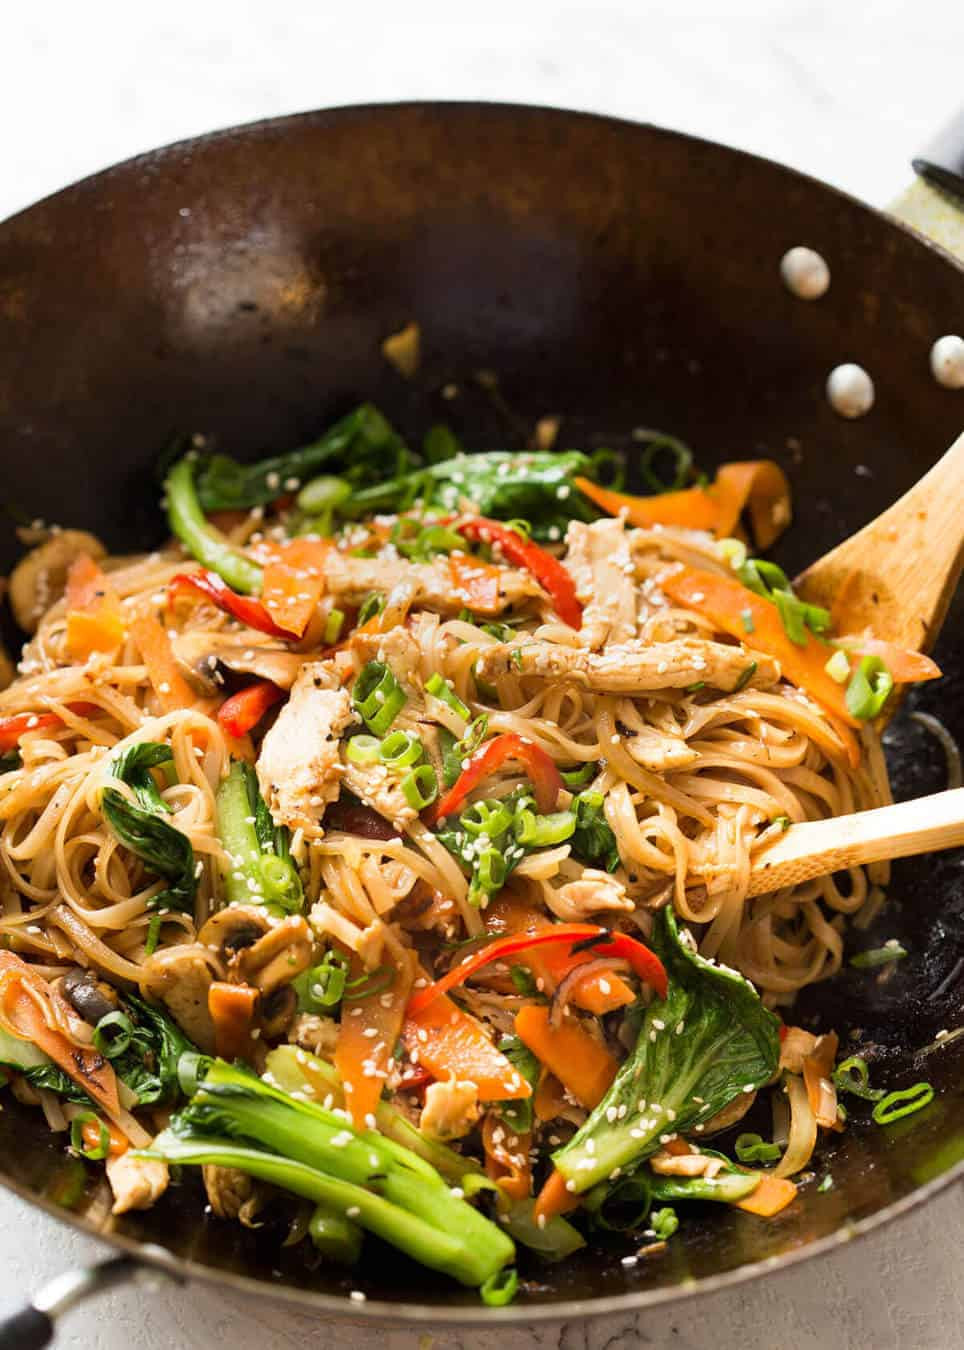 Healthy Stir Fry Noodles  Chicken Stir Fry with Rice Noodles